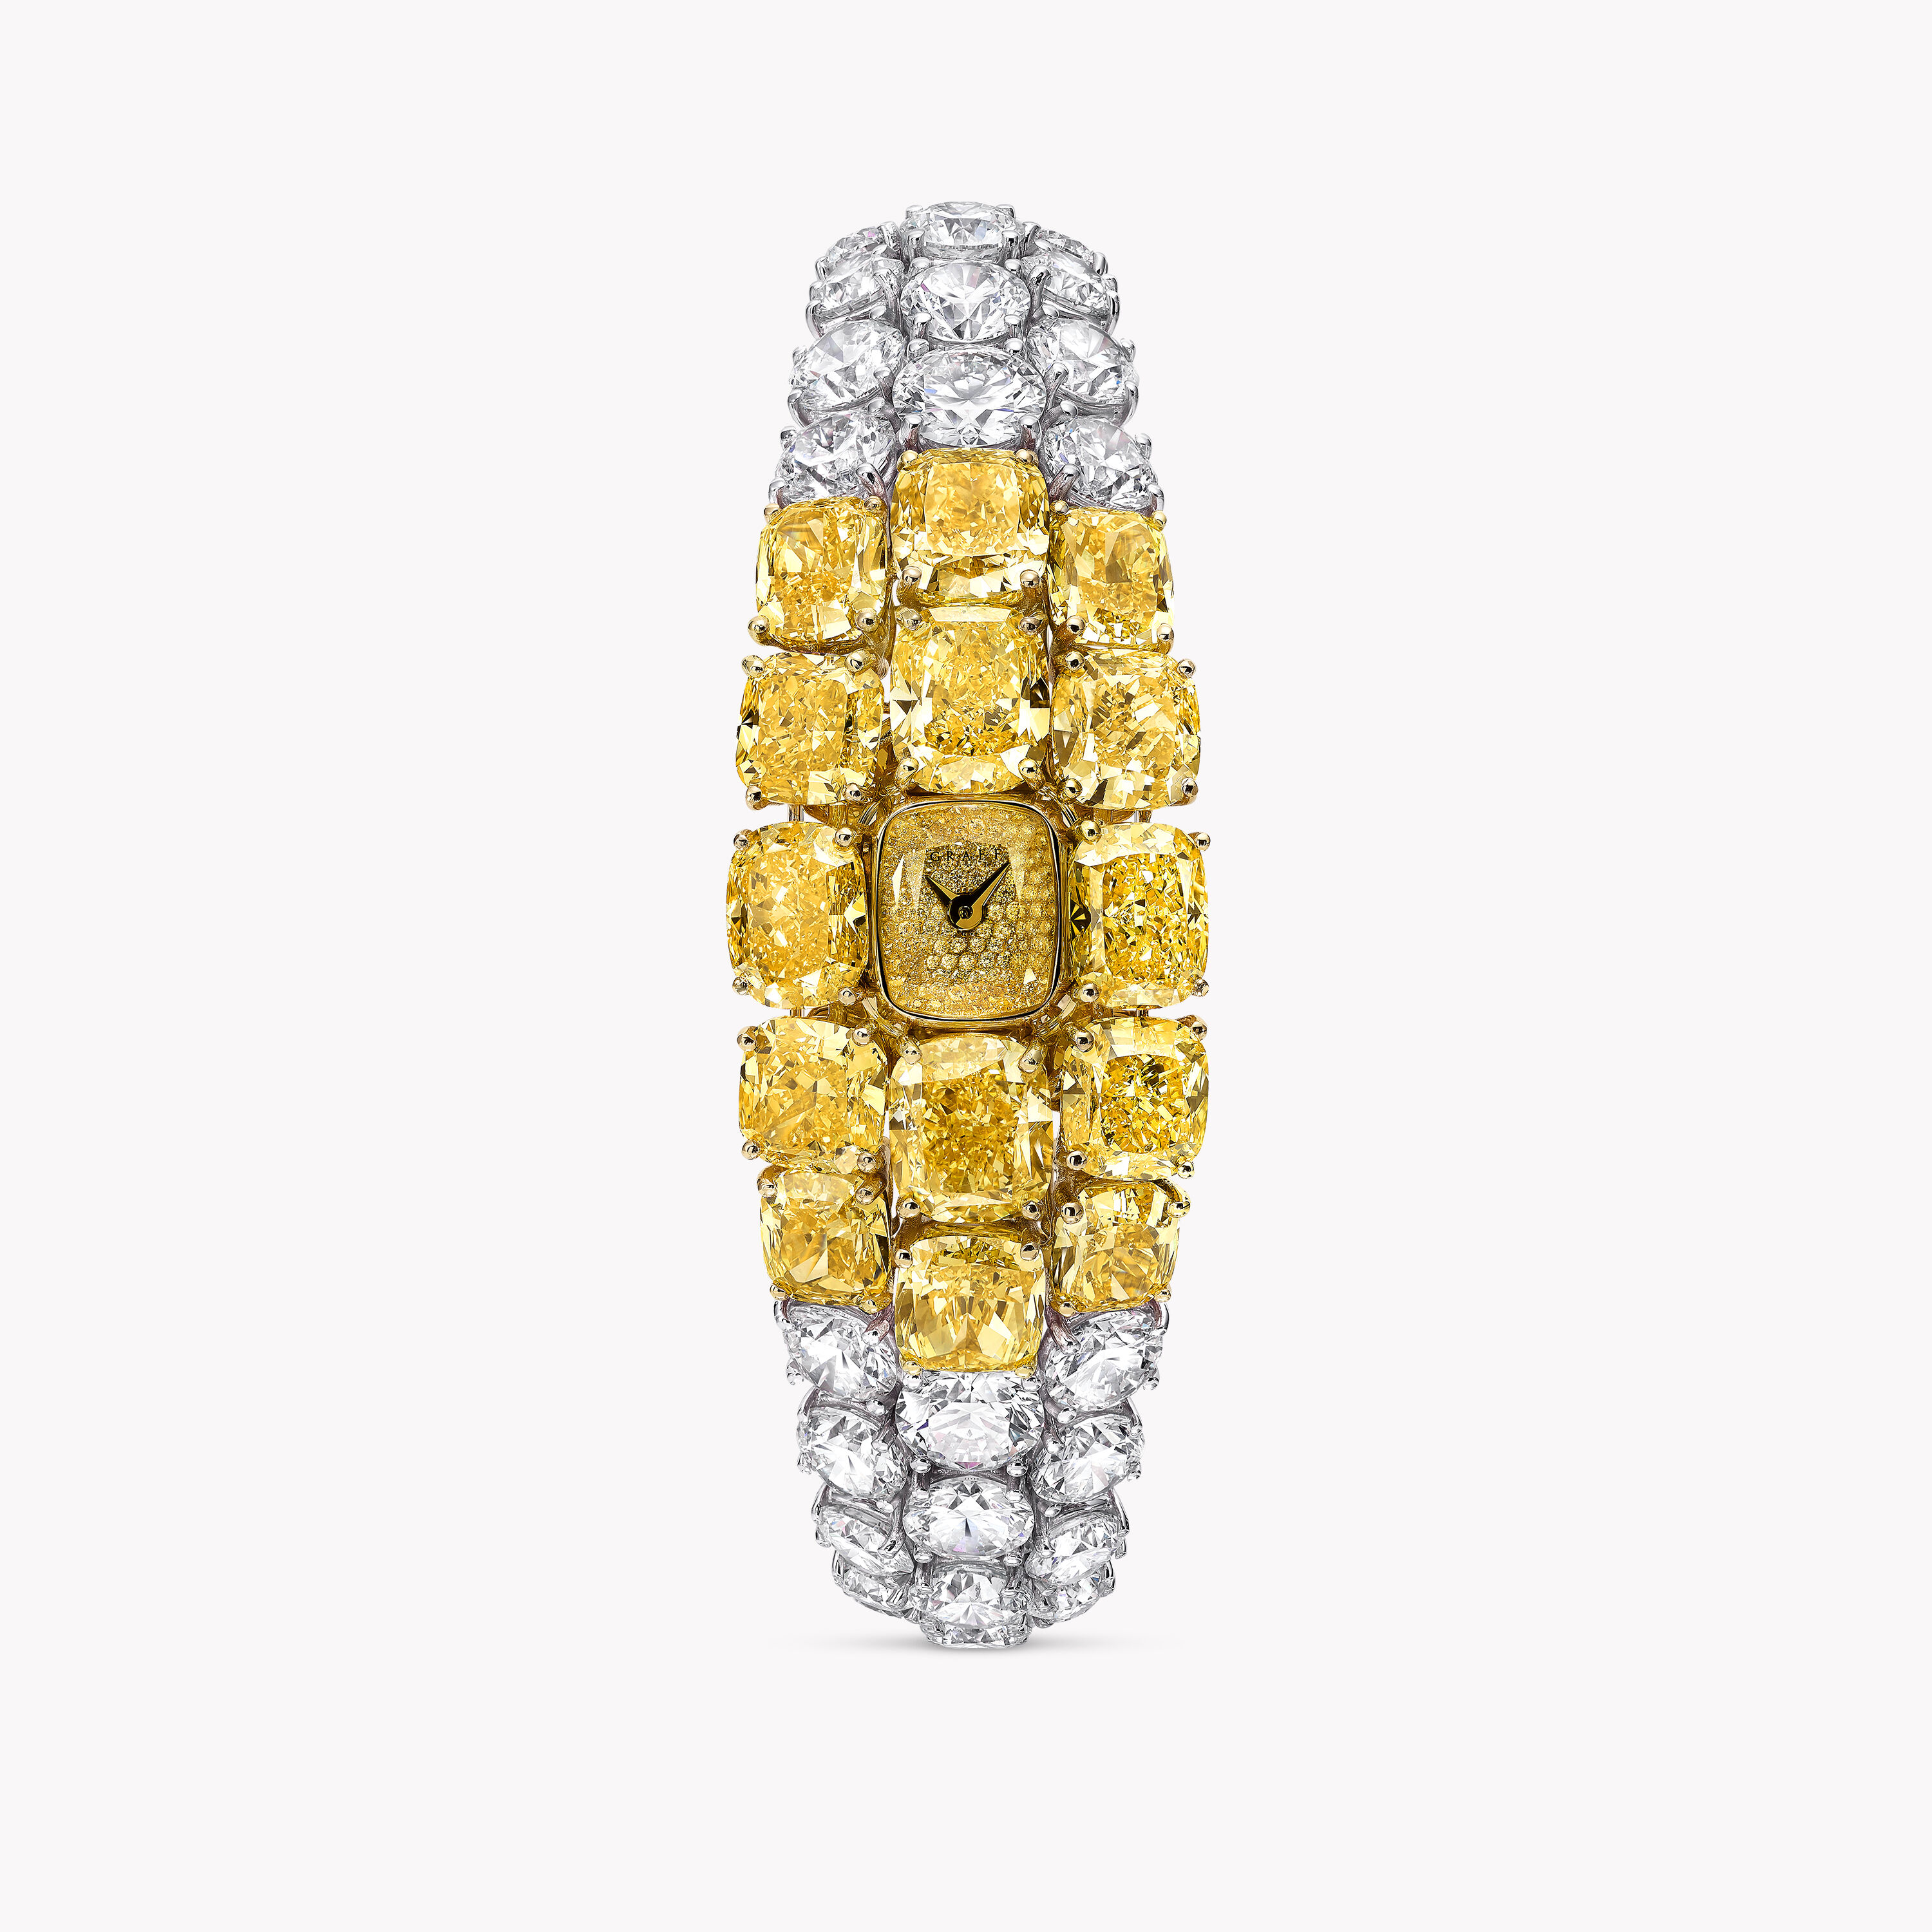 A Graff yellow and white diamond unique timepiece for lady